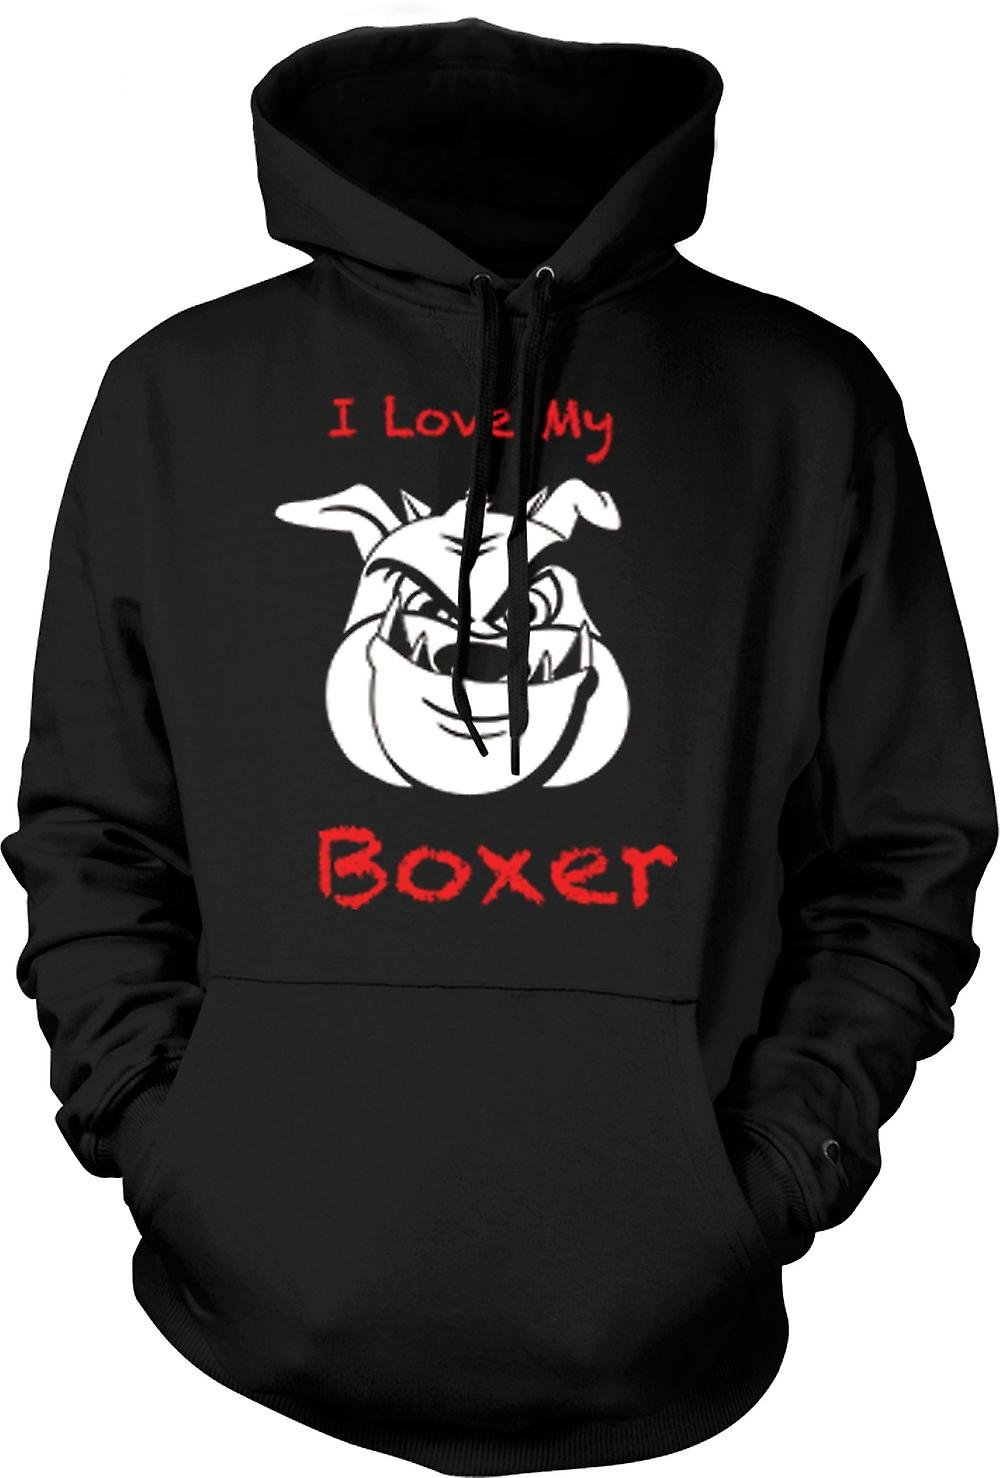 Mens Hoodie - I Love My Dog Boxer